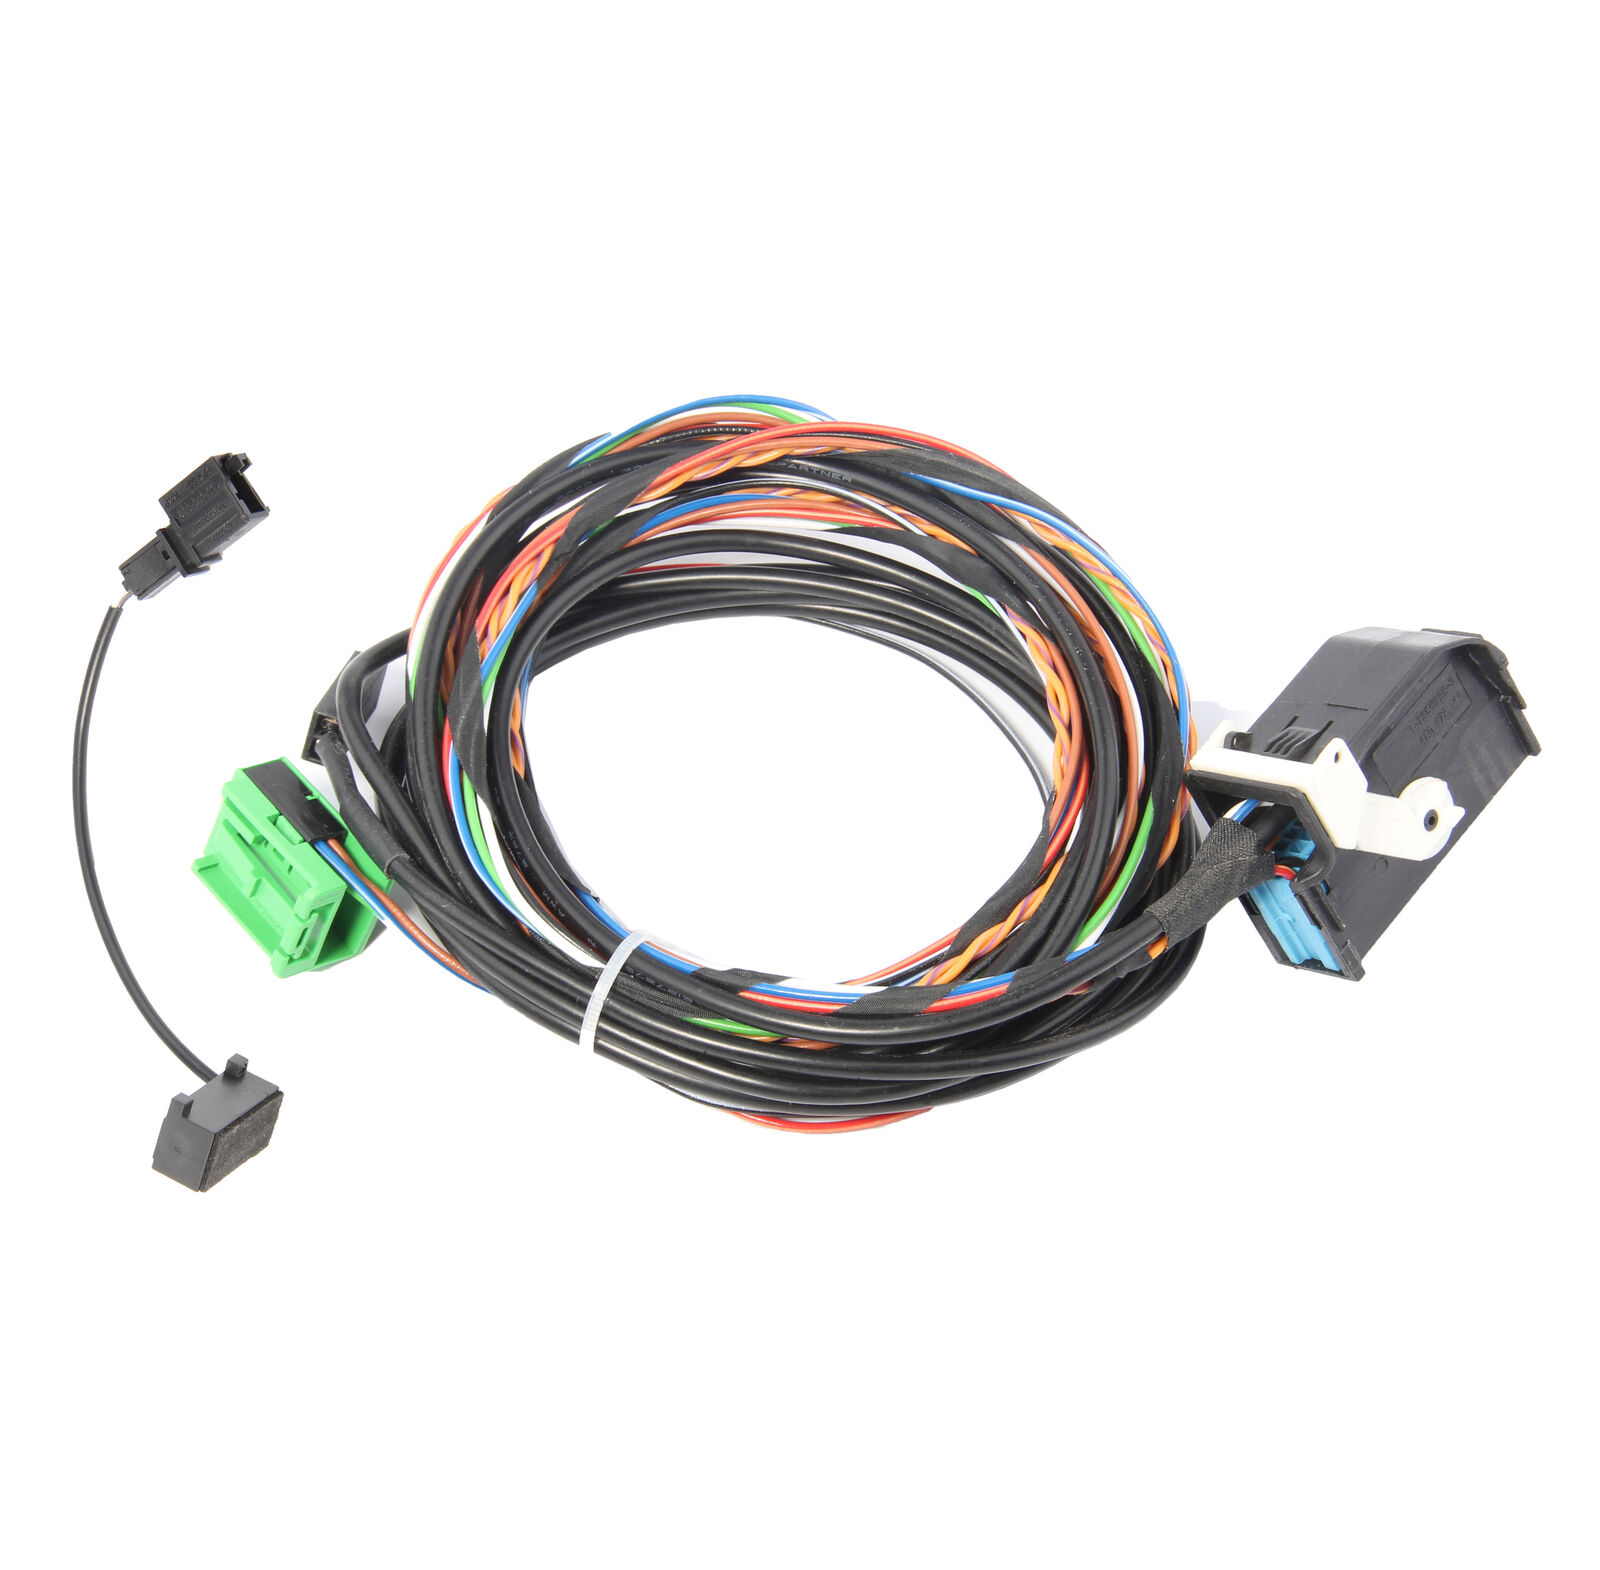 Bluetooth Wiring Harness Cable For Vw Golf Gti Eos Cc Rcd510 Rns510 Cen Tech Jeep Cj 1 Of 7free Shipping